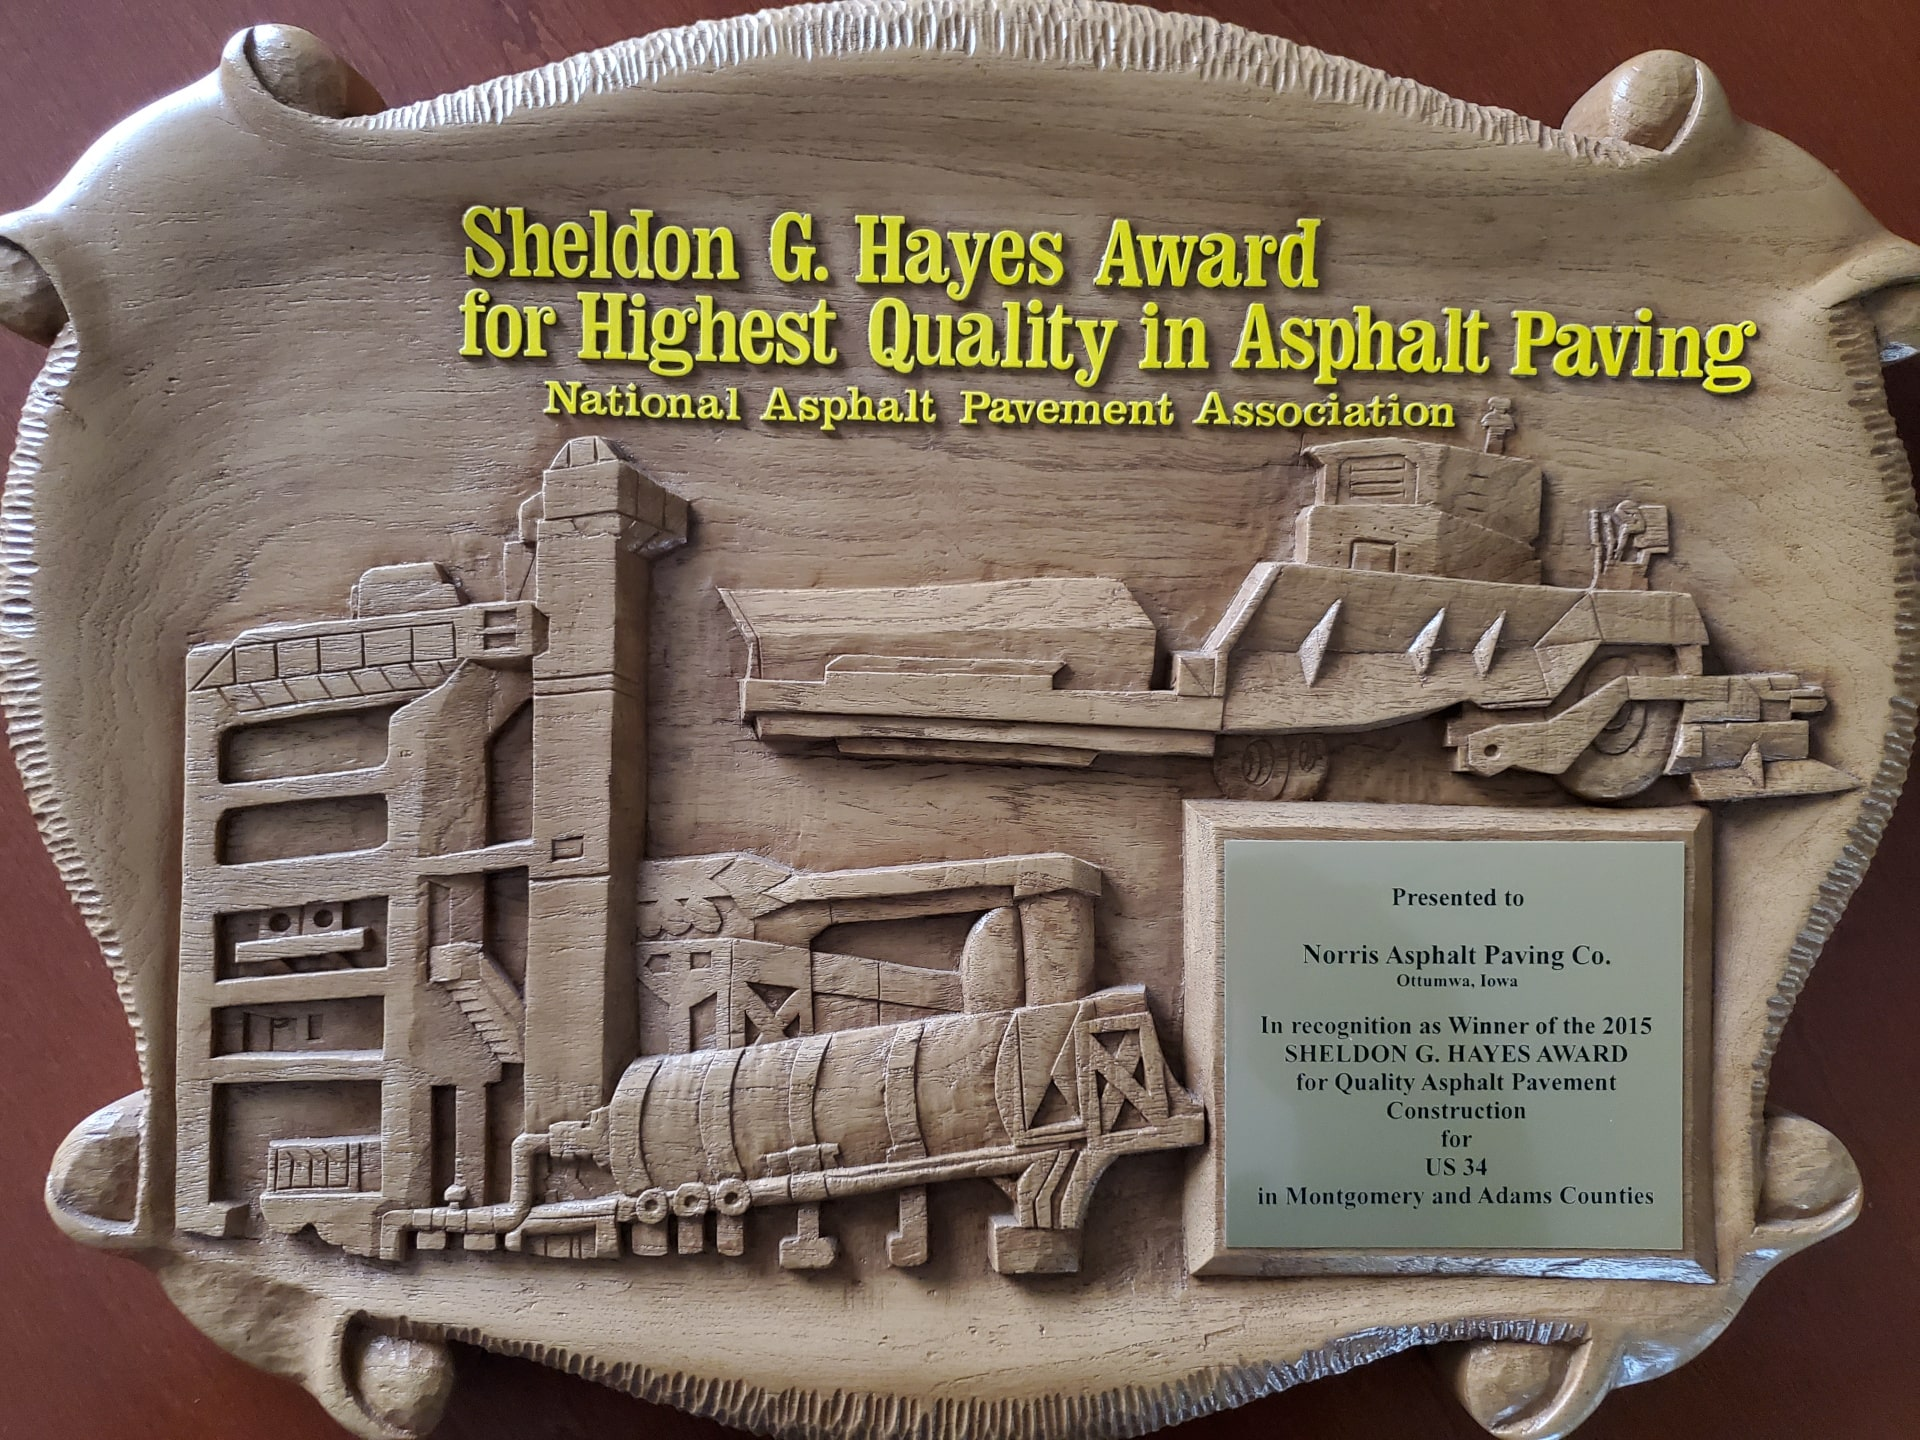 Sheldon G. Hayes Award for Highest Quality in Asphalt and Paving